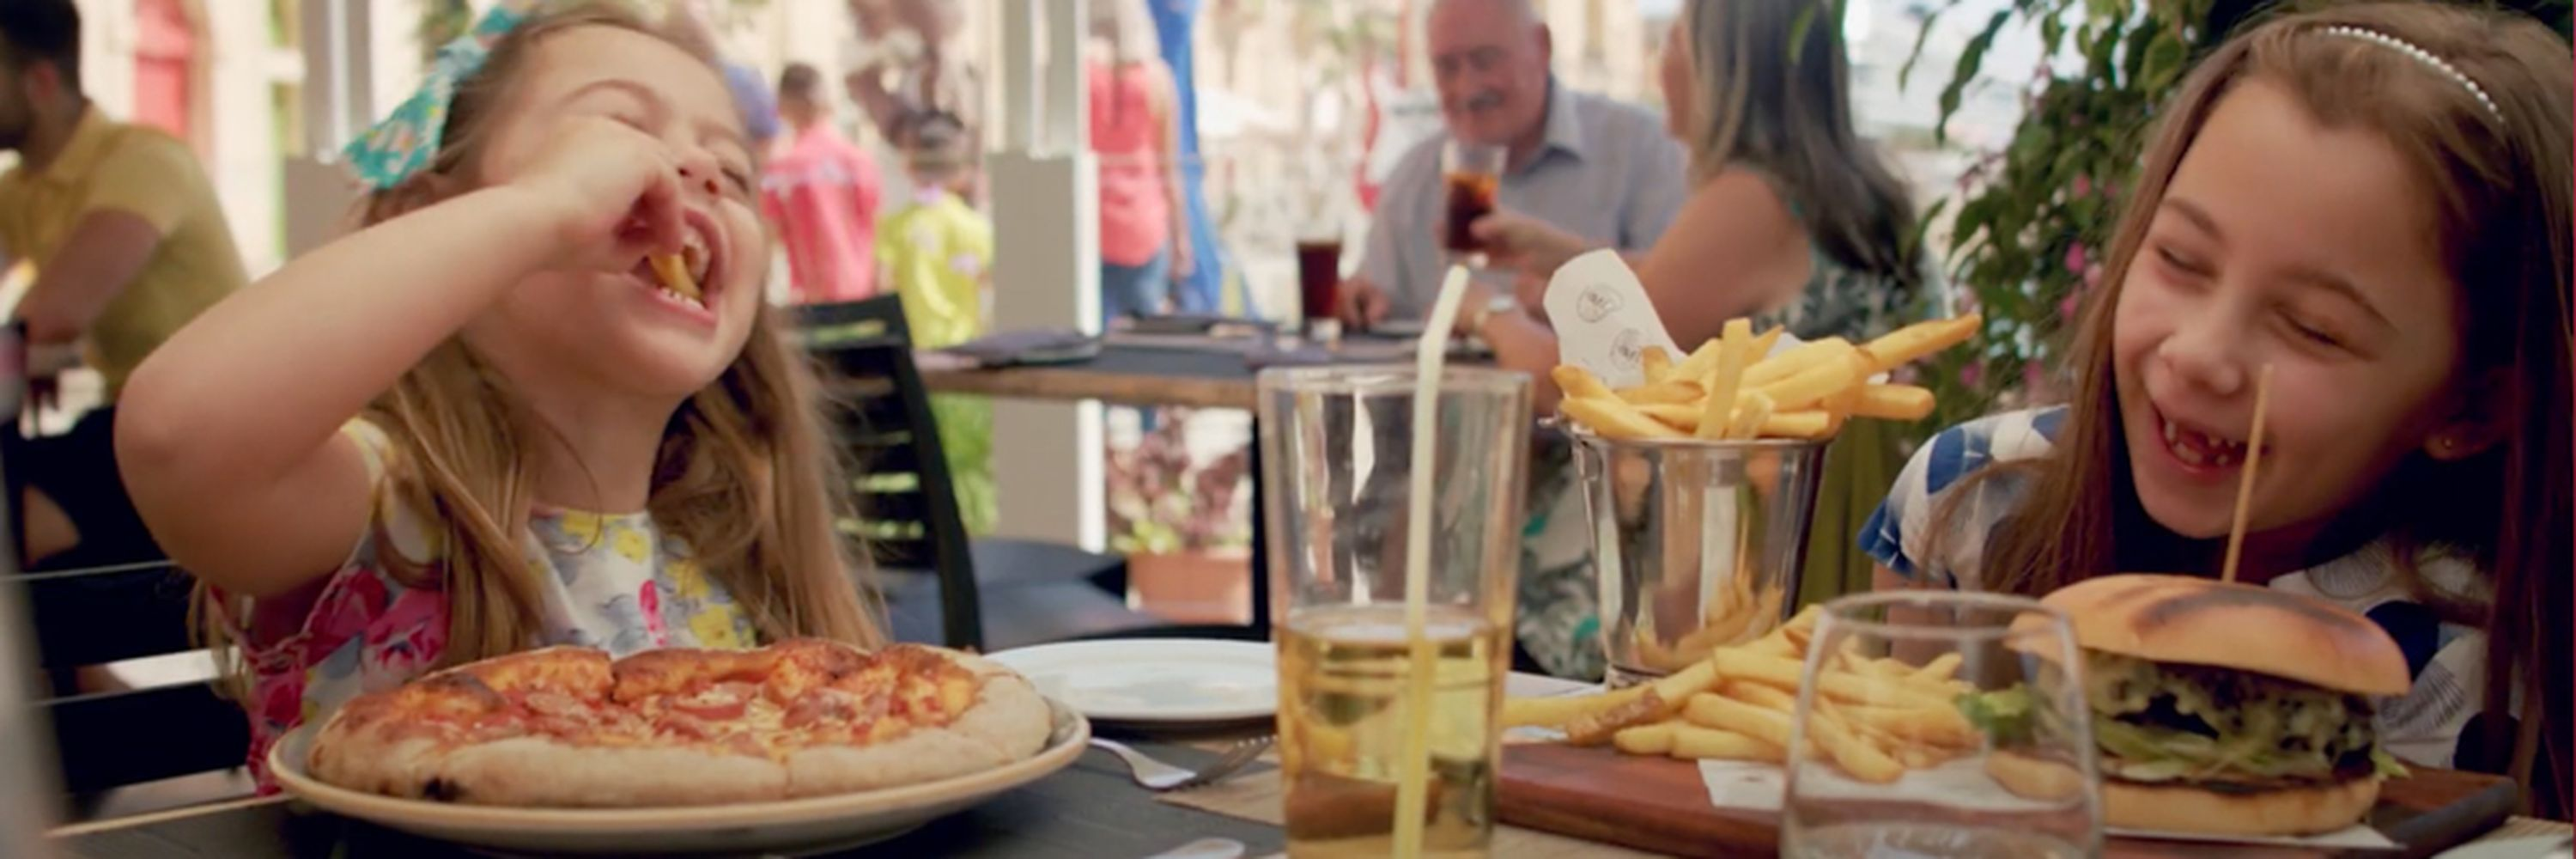 Two girls are eating at a table, one stole a fry from the other in motion blur's commercial